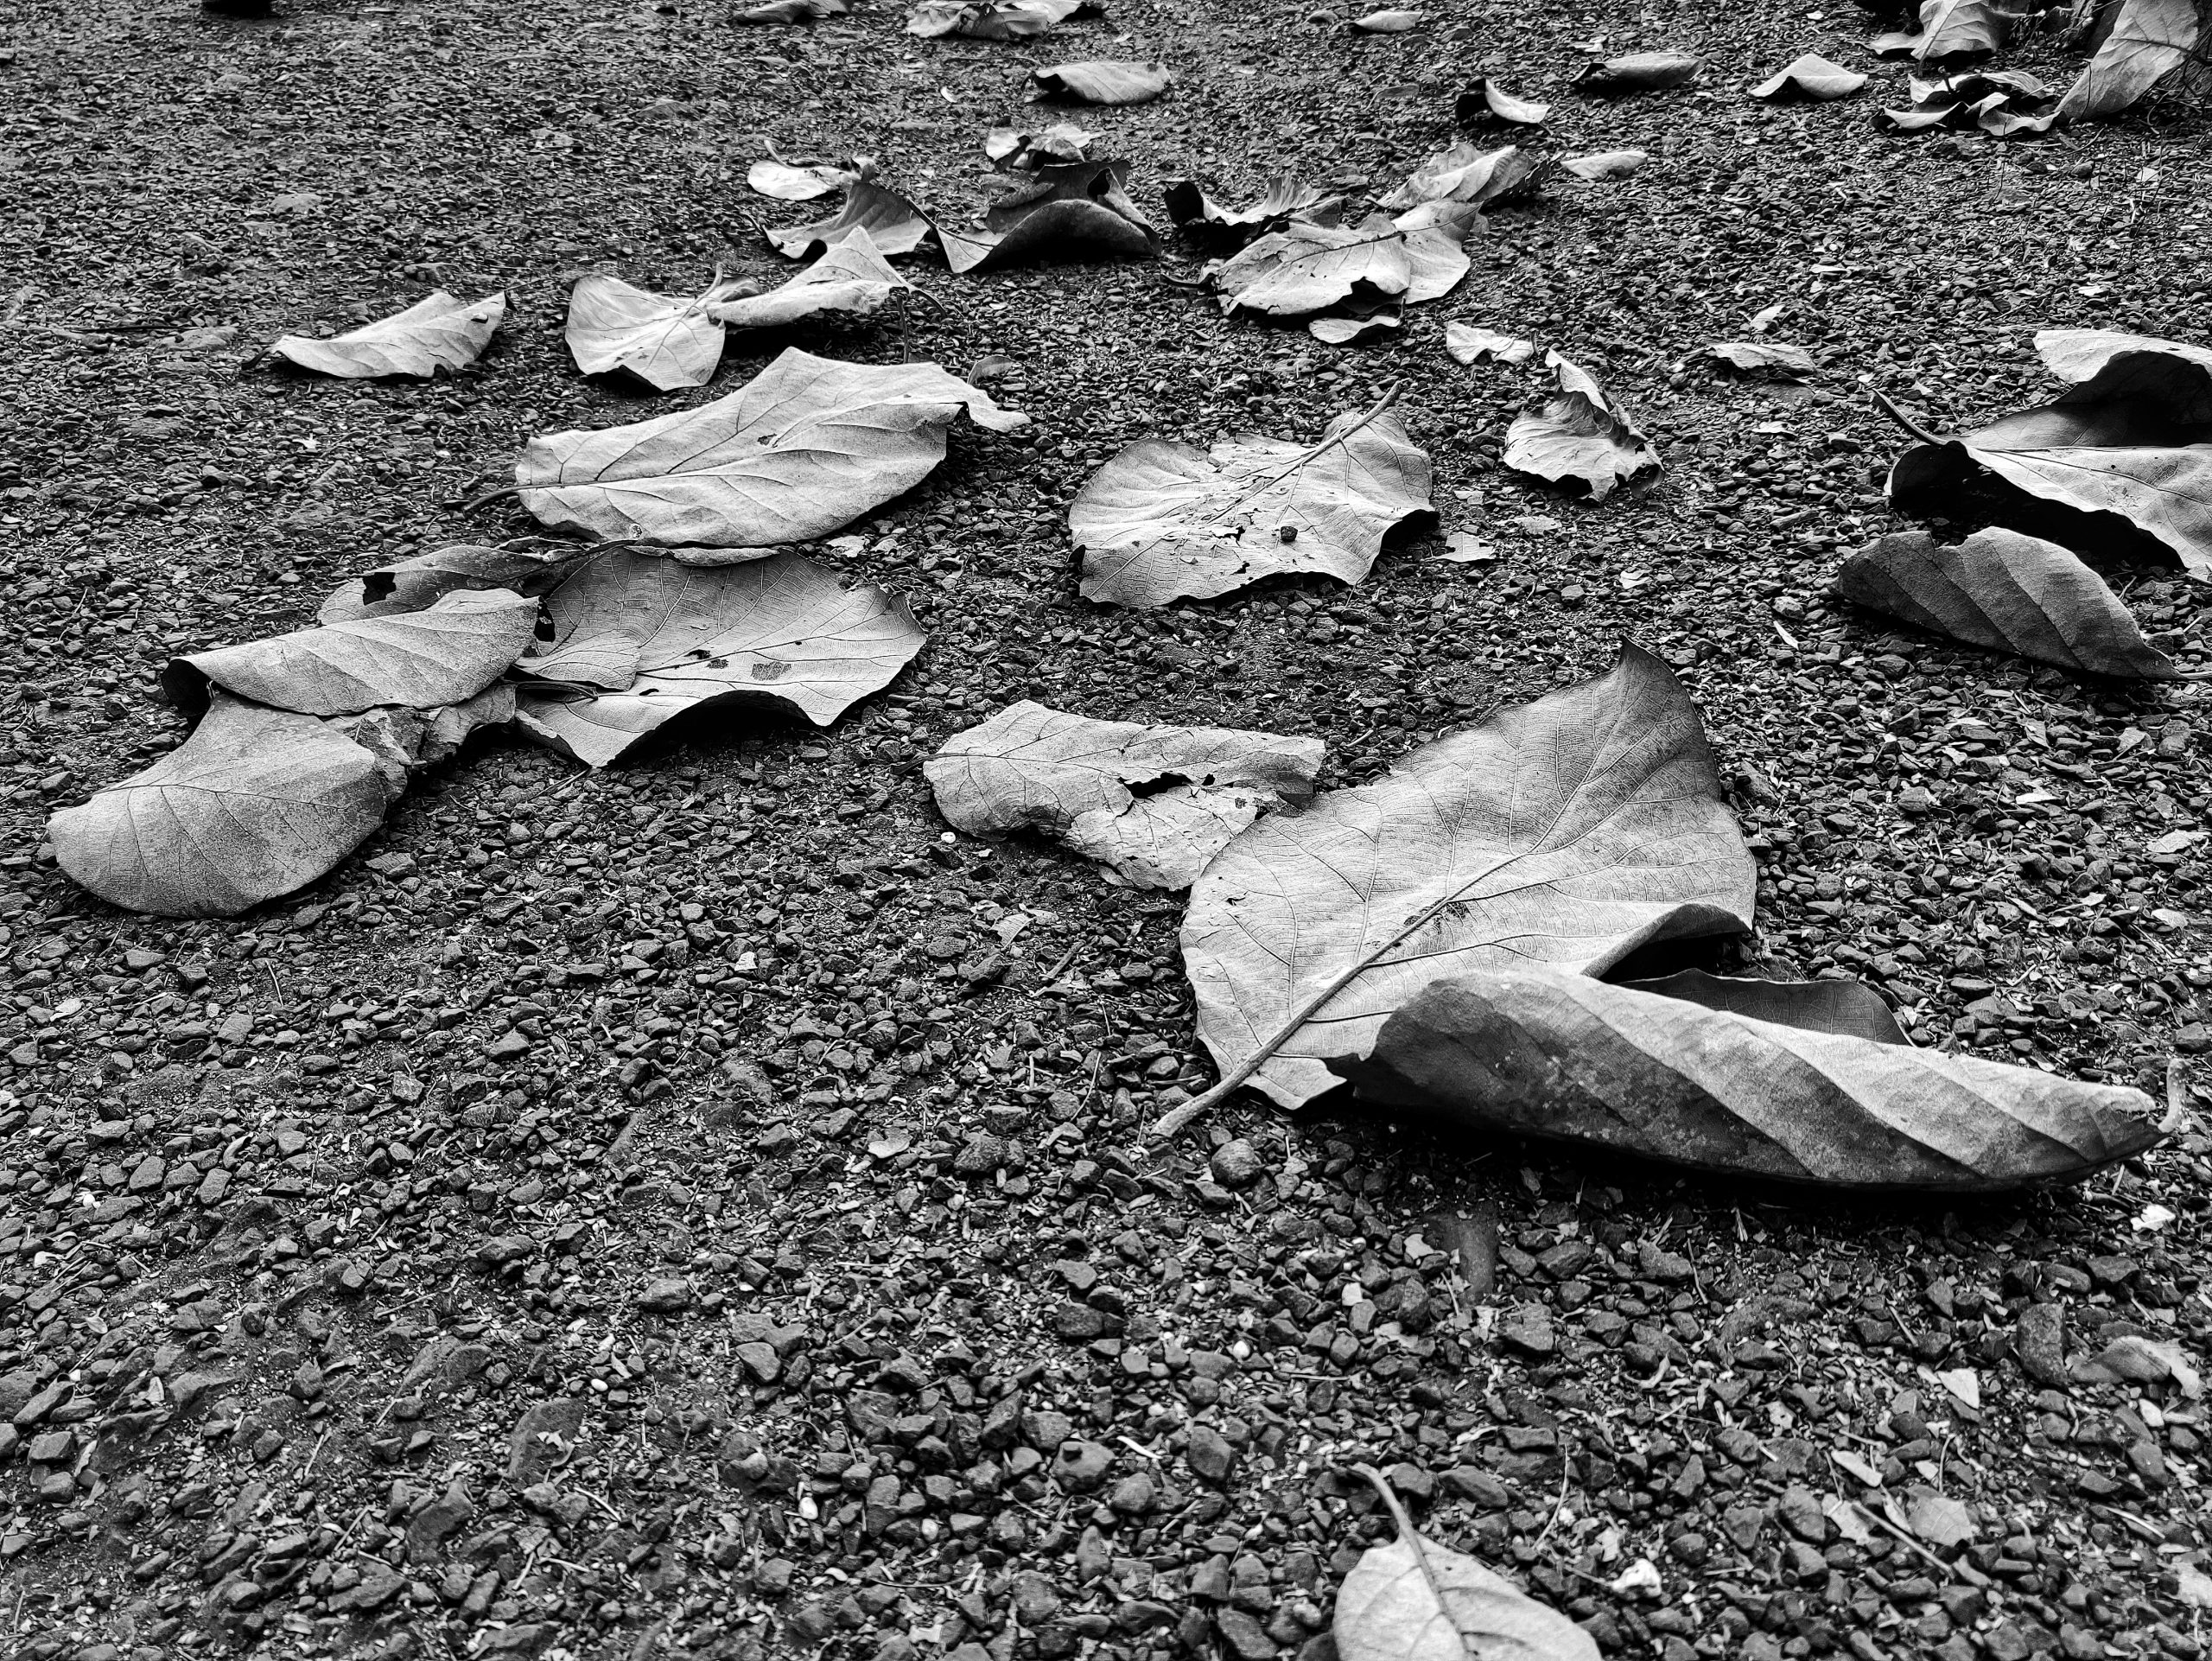 Dry leaves on road